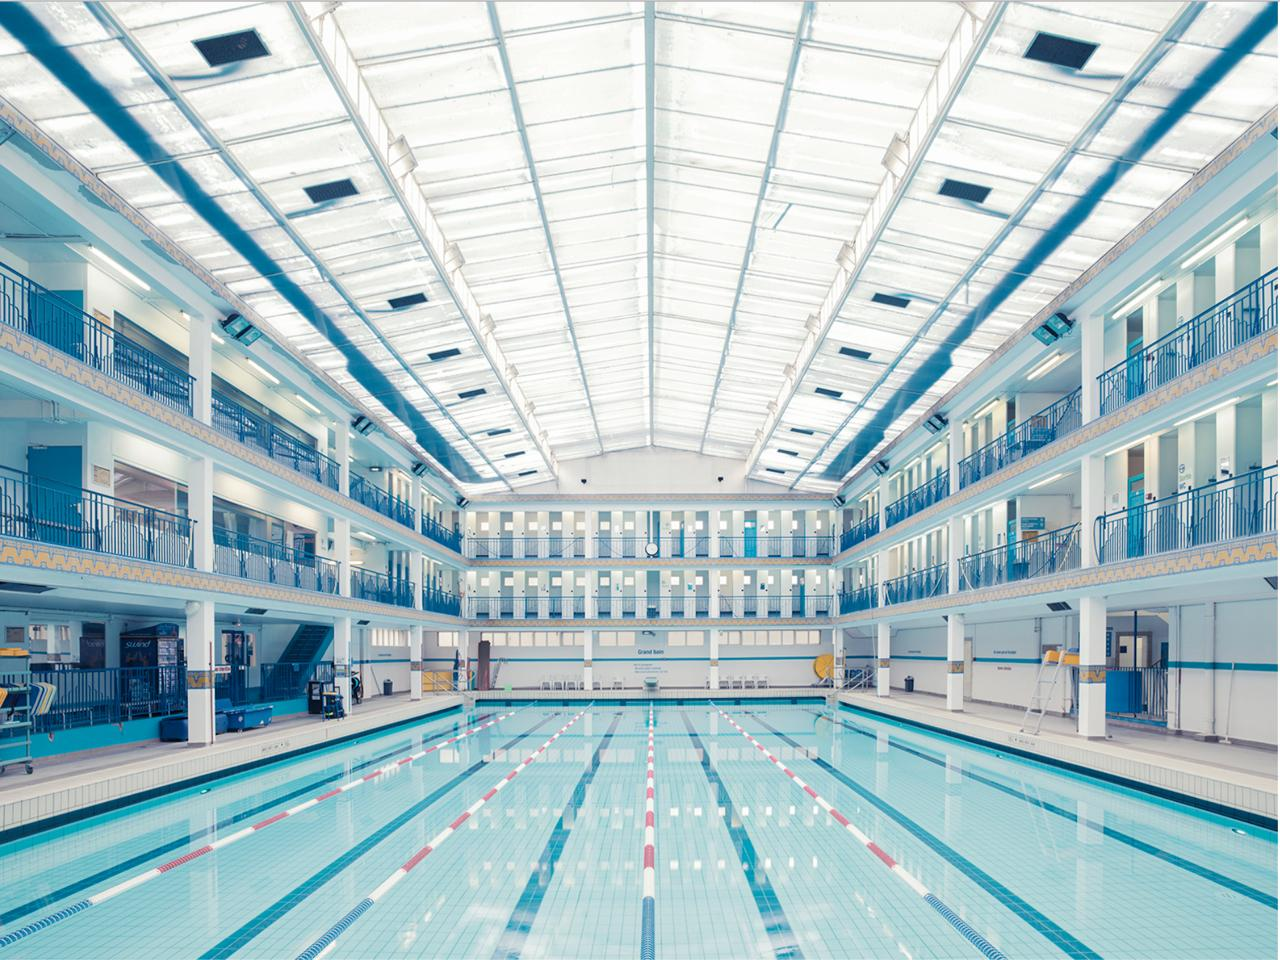 Piscine Pontoise Fitness Franck Bohbot Pontoise 3 2015 Photograph For Sale At 1stdibs